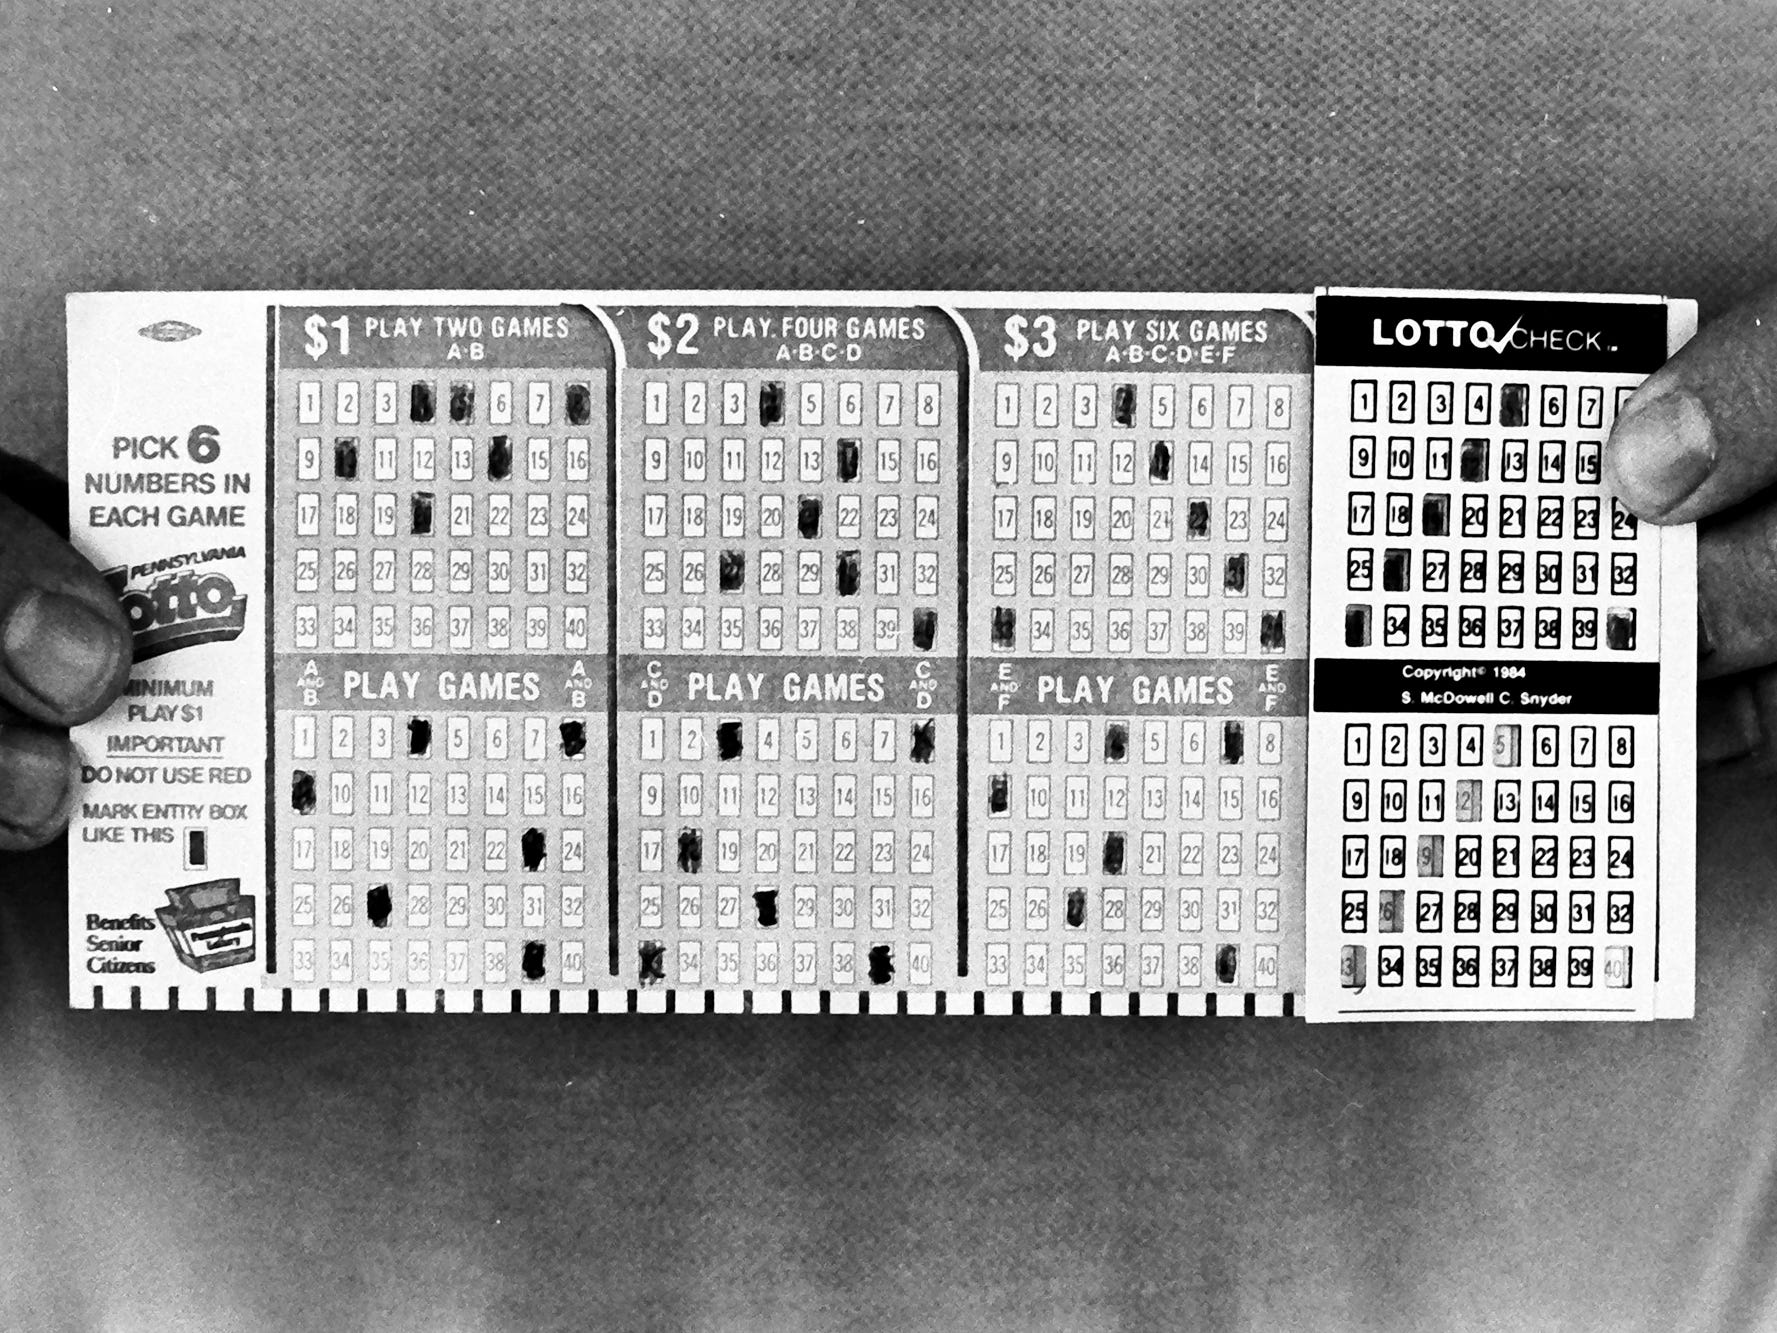 In 1985, a lottery ticket looked like a punch card.